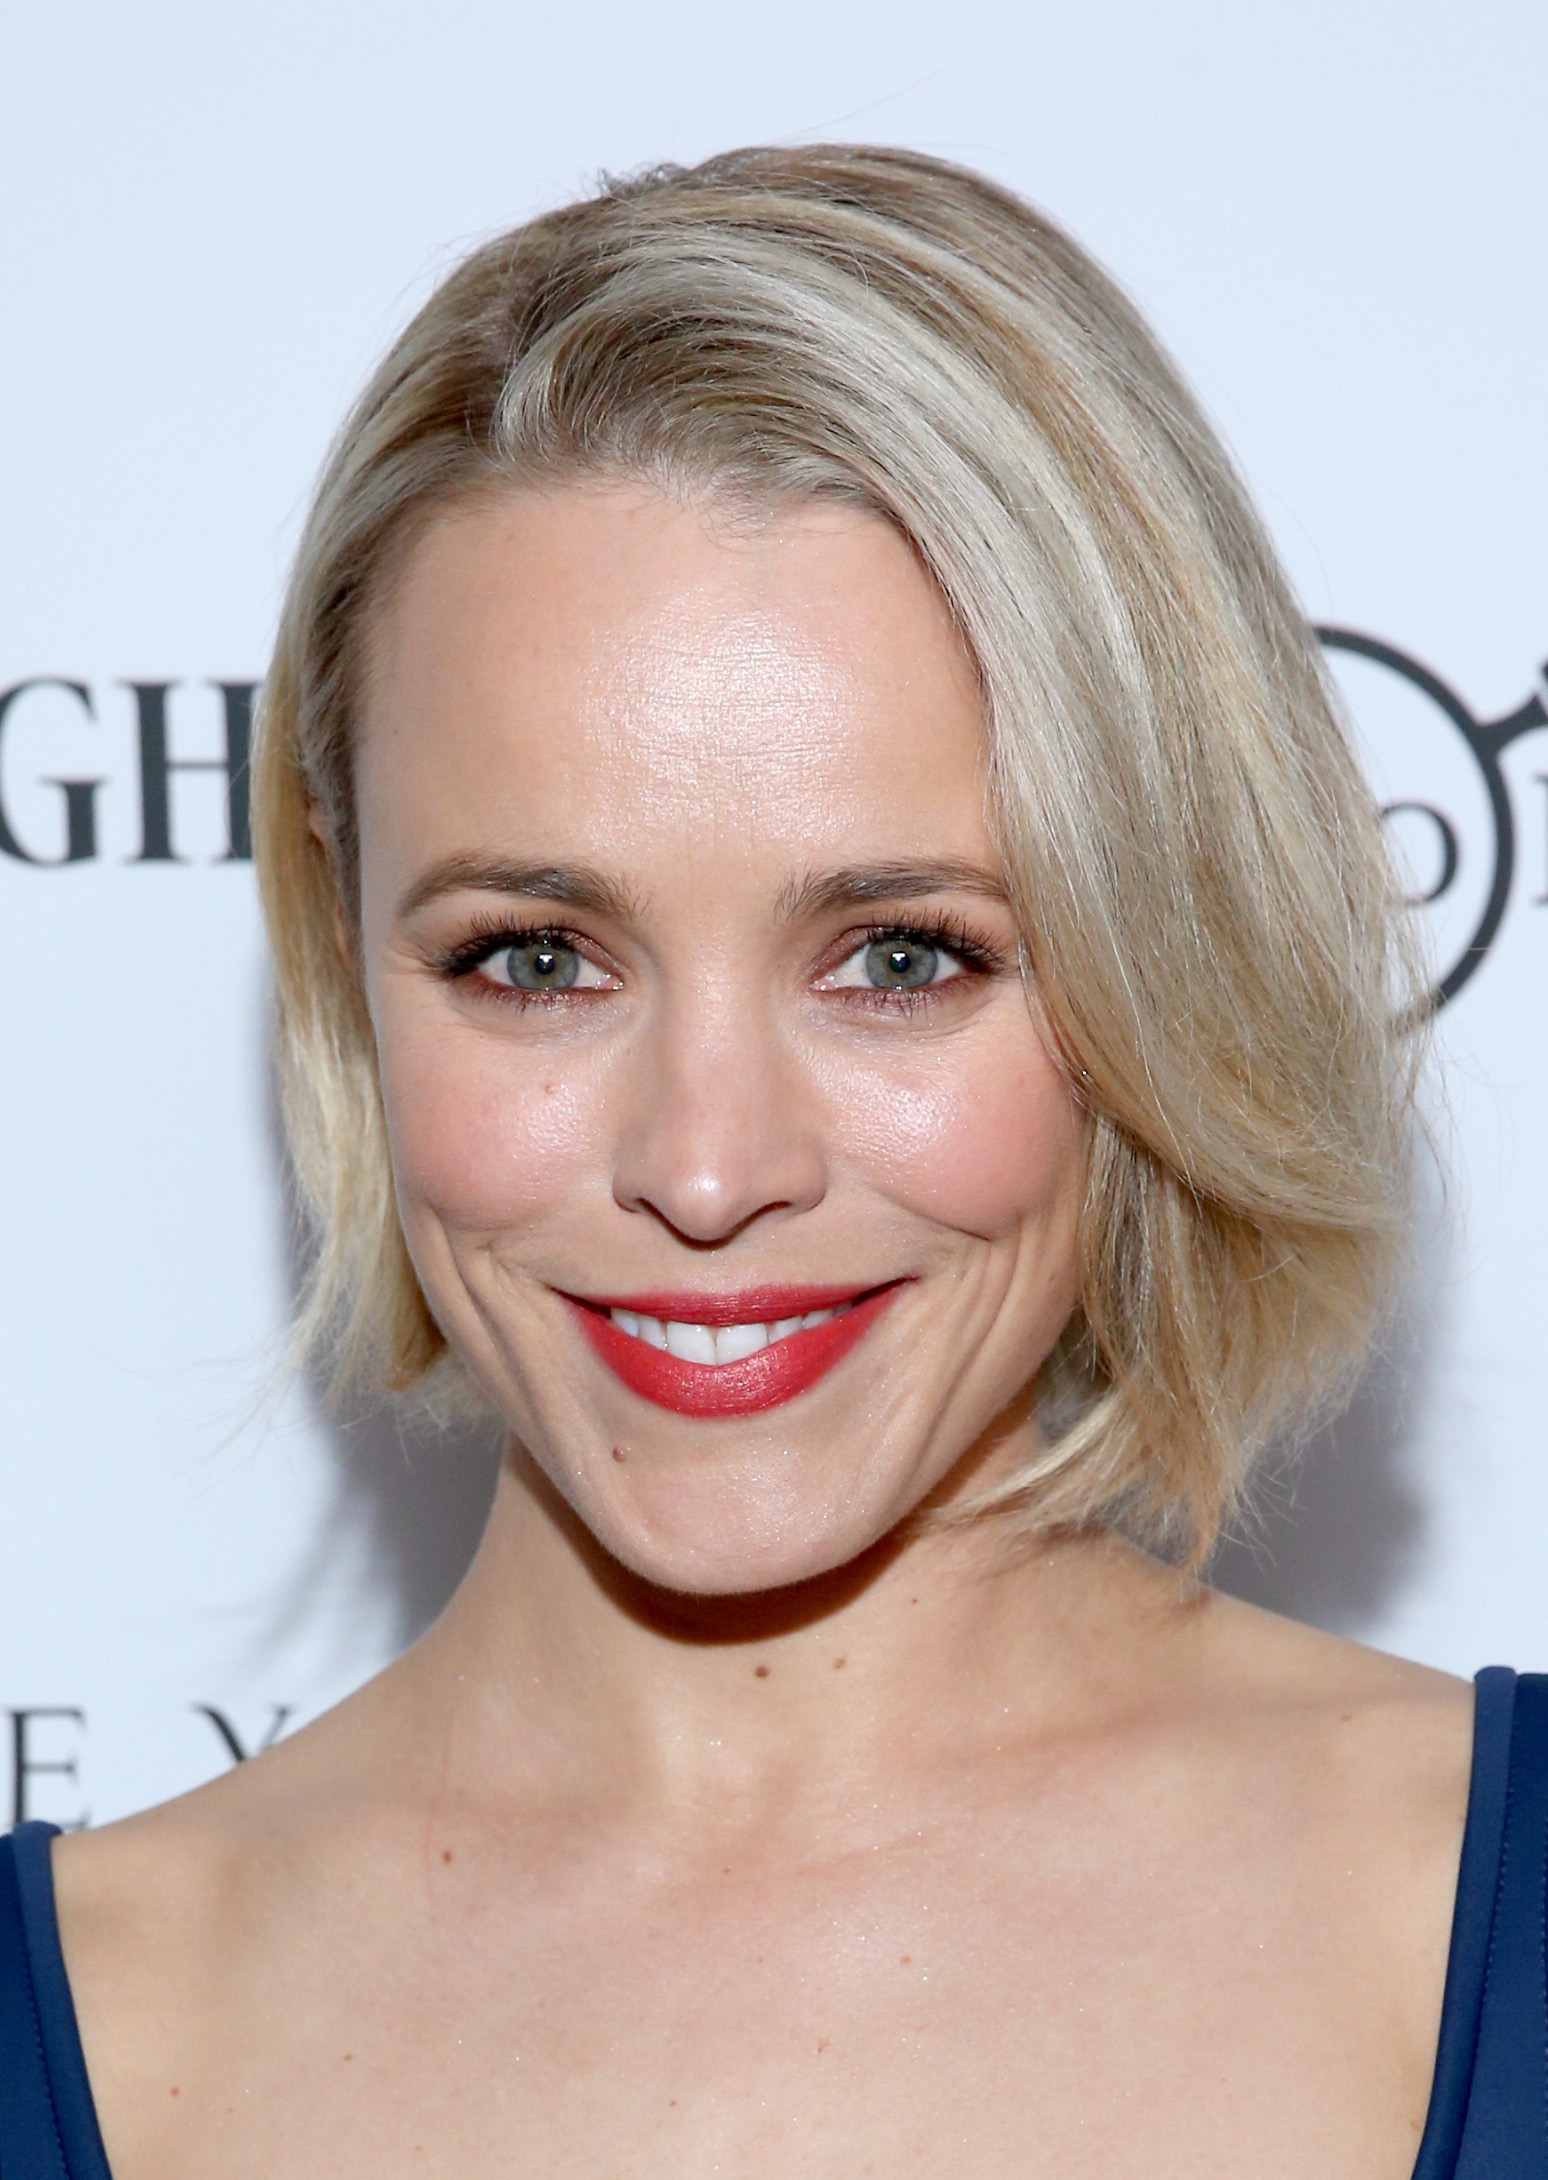 Rachel Mcadams Dyes Hair Platinum Blonde Because The Hair Trend Isn